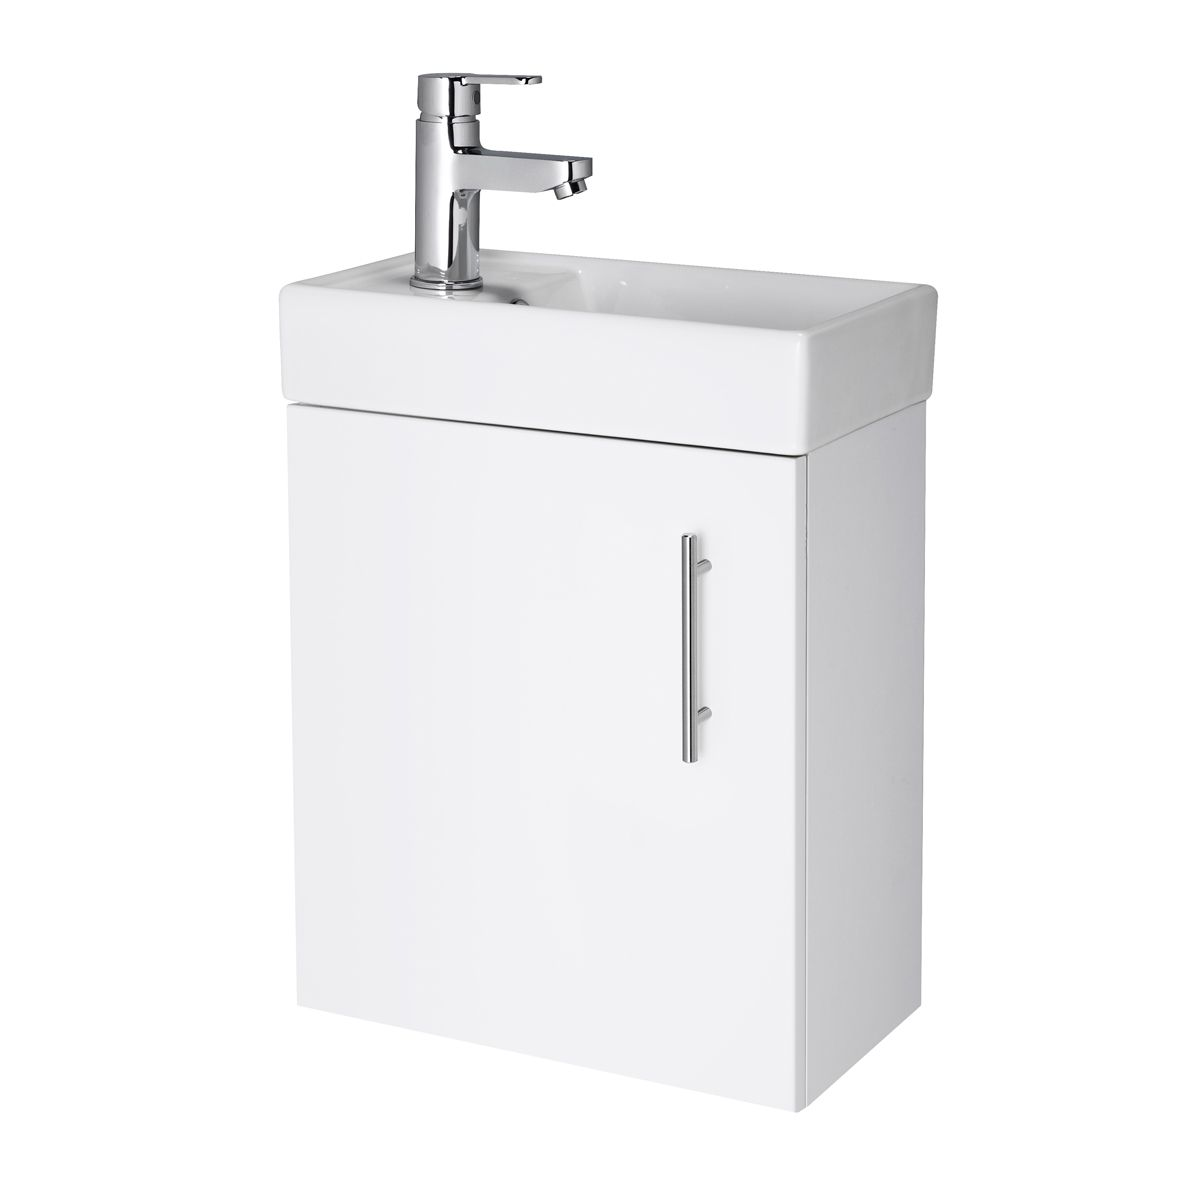 Nuie Vault Gloss White Wall Hung Compact Vanity Unit 400mm